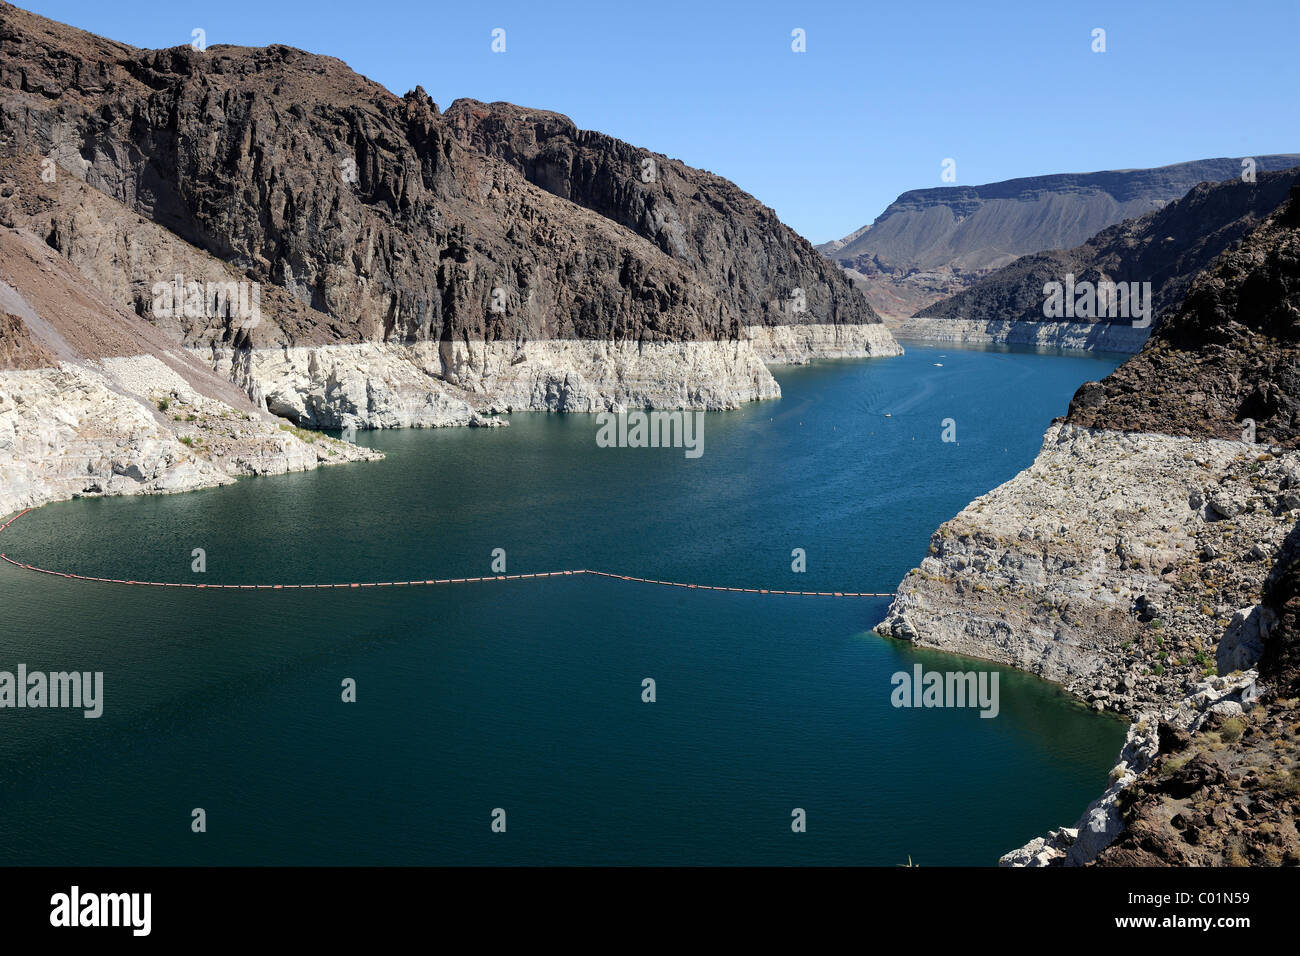 Lake Mead Reservoir at the Hoover Dam, Nevada, USA, North America Stock Photo